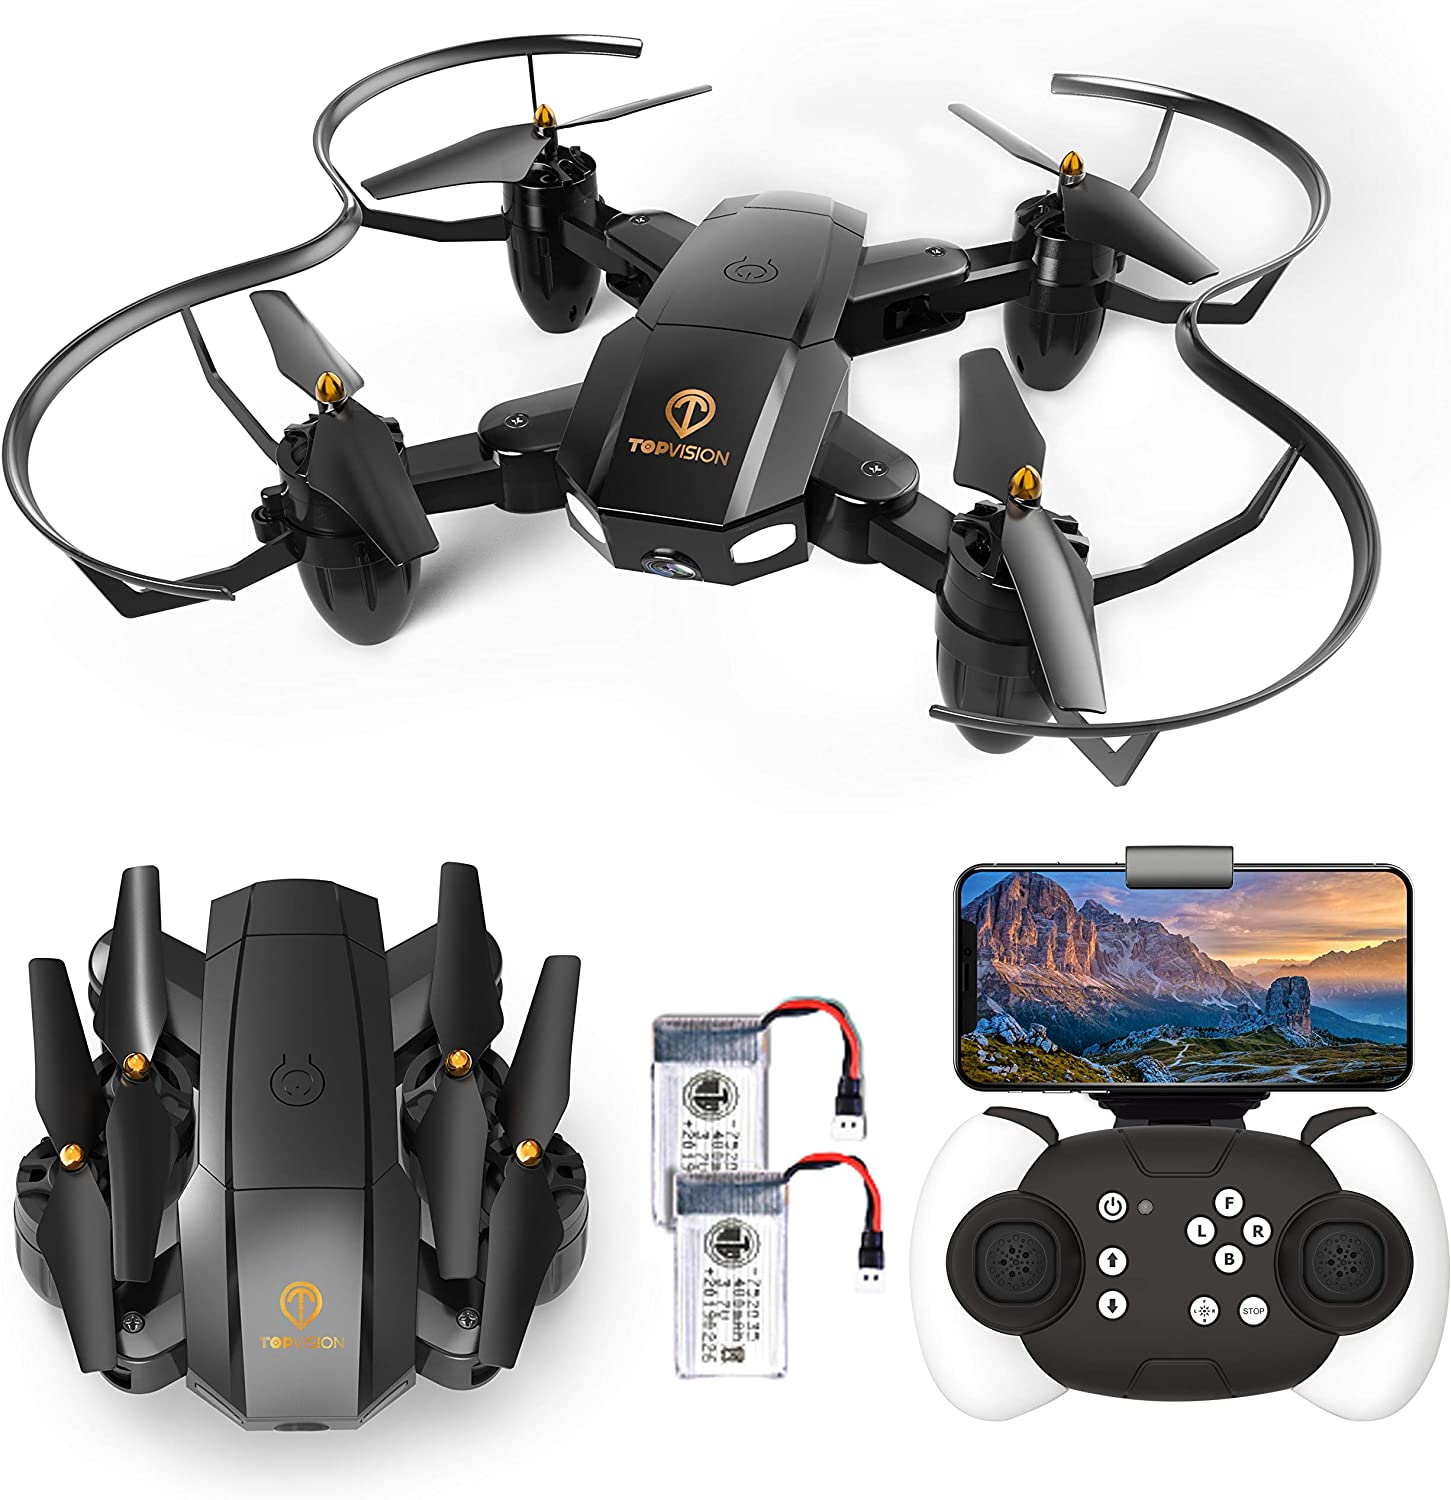 Topvision x39-1 is at #5 for best drones under 50 dollars